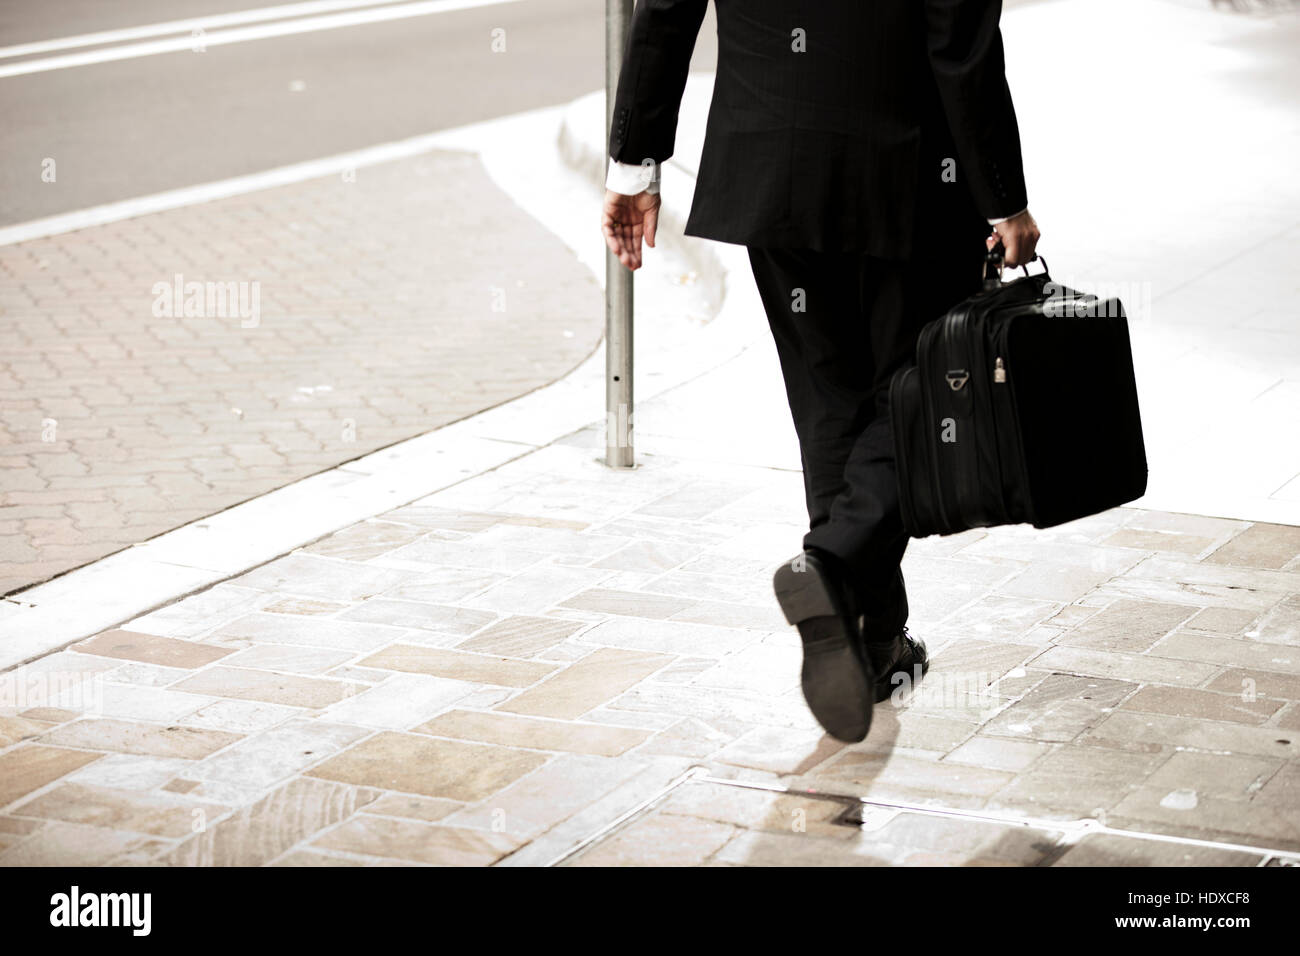 Business man in a suit holding briefcase walking down street - Stock Image